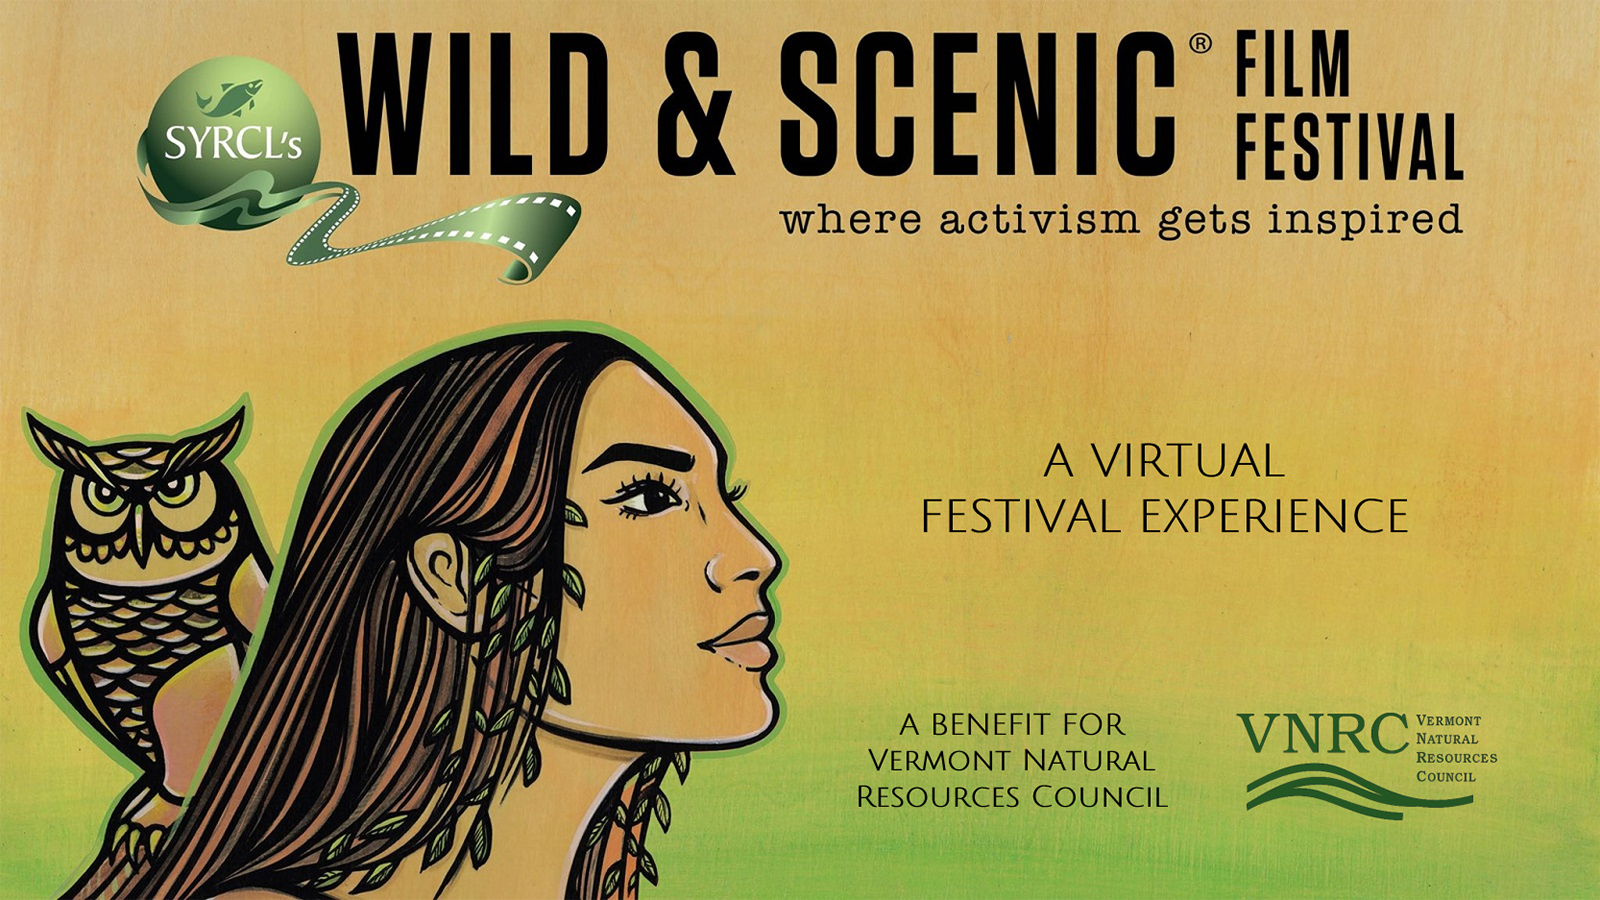 Vermont Natural Resources Council Presents SYRCL's Wild & Scenic Film Festival On Tour